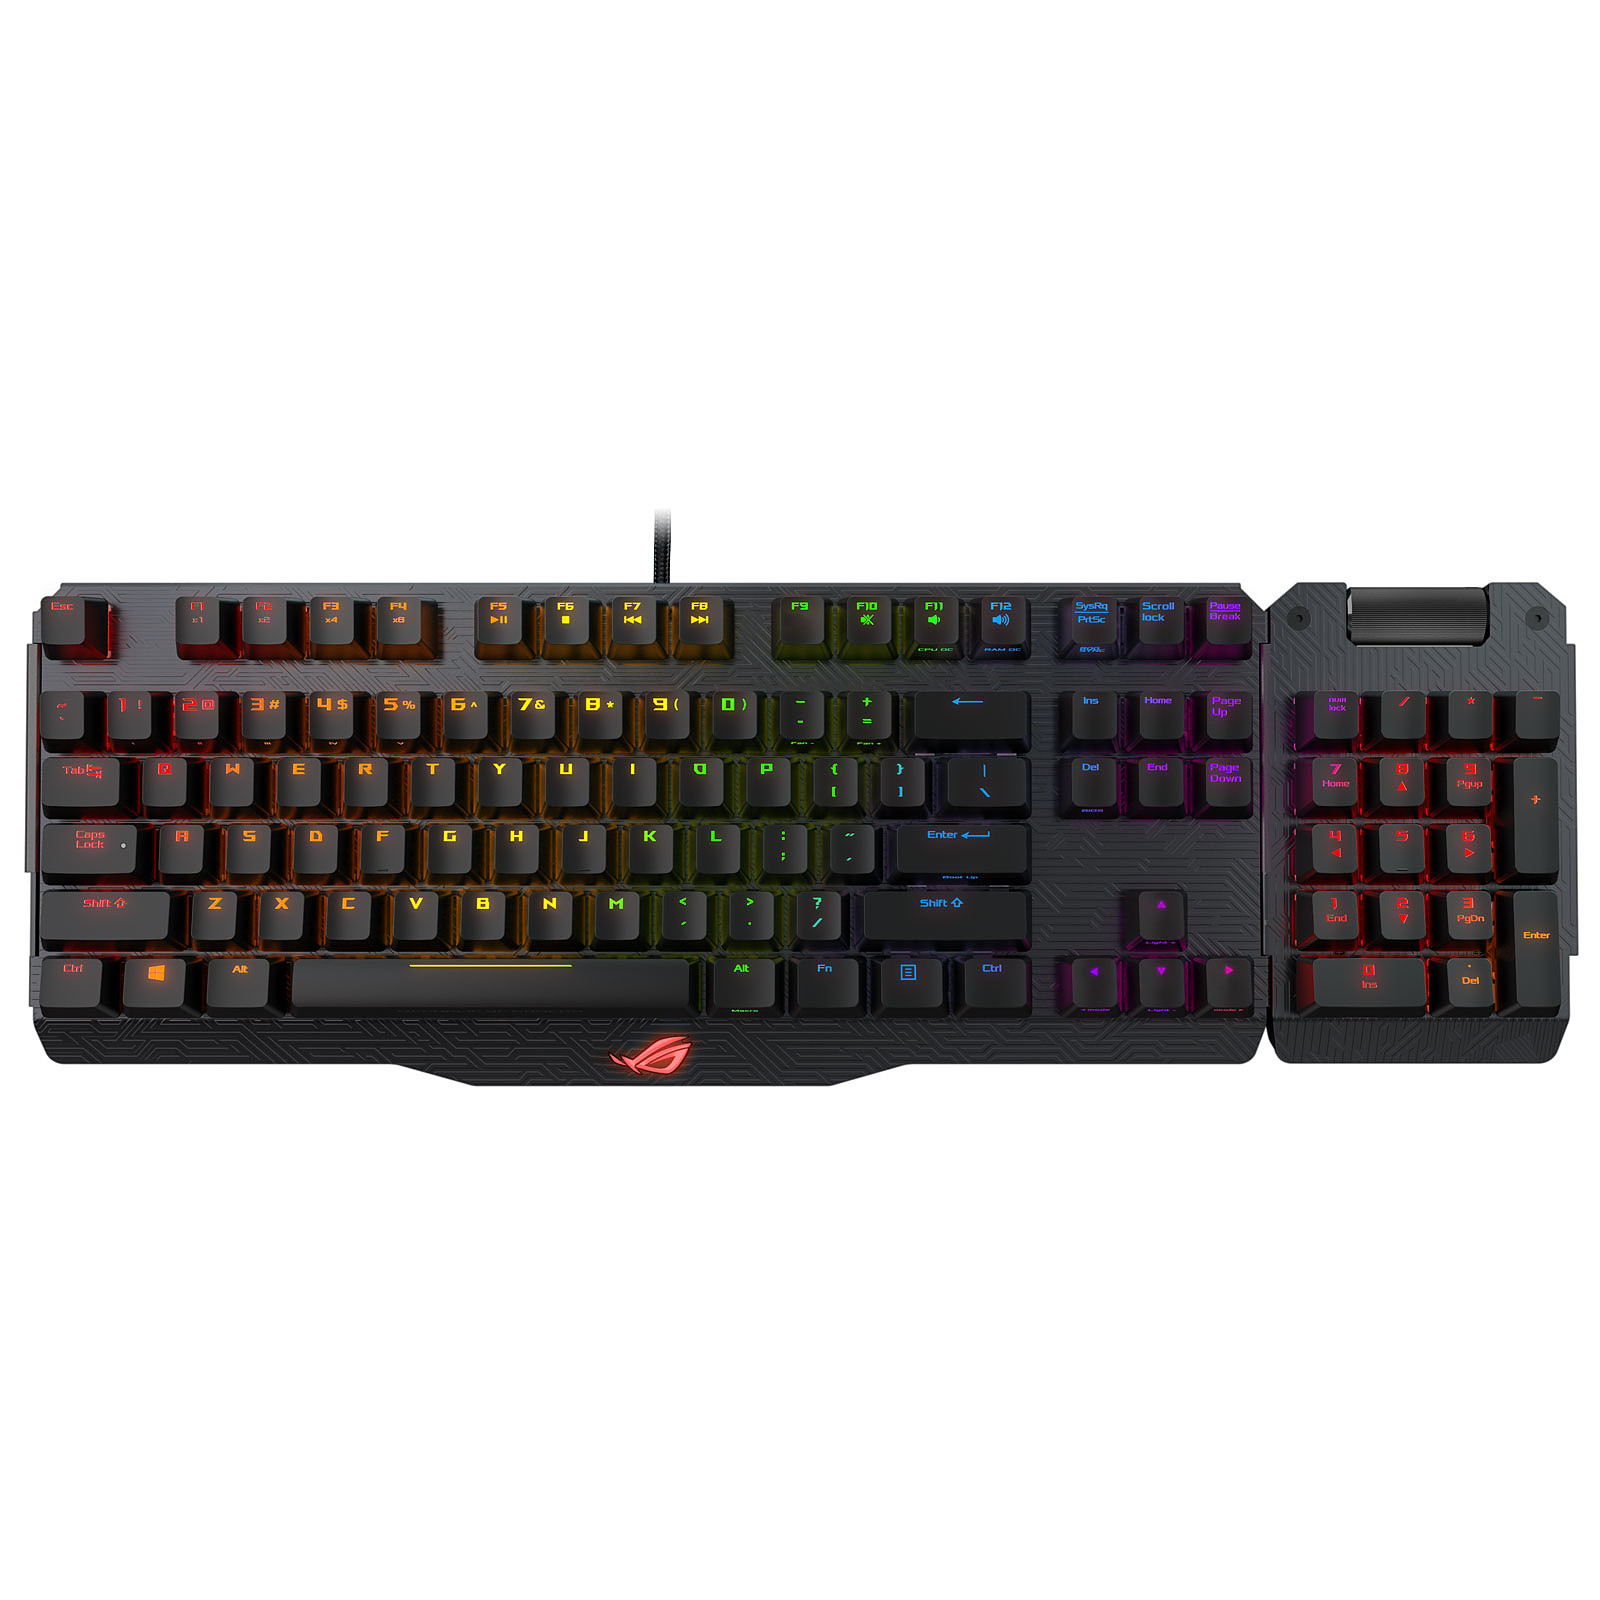 ASUS ROG Republic of Gamers Claymore (MX Red)